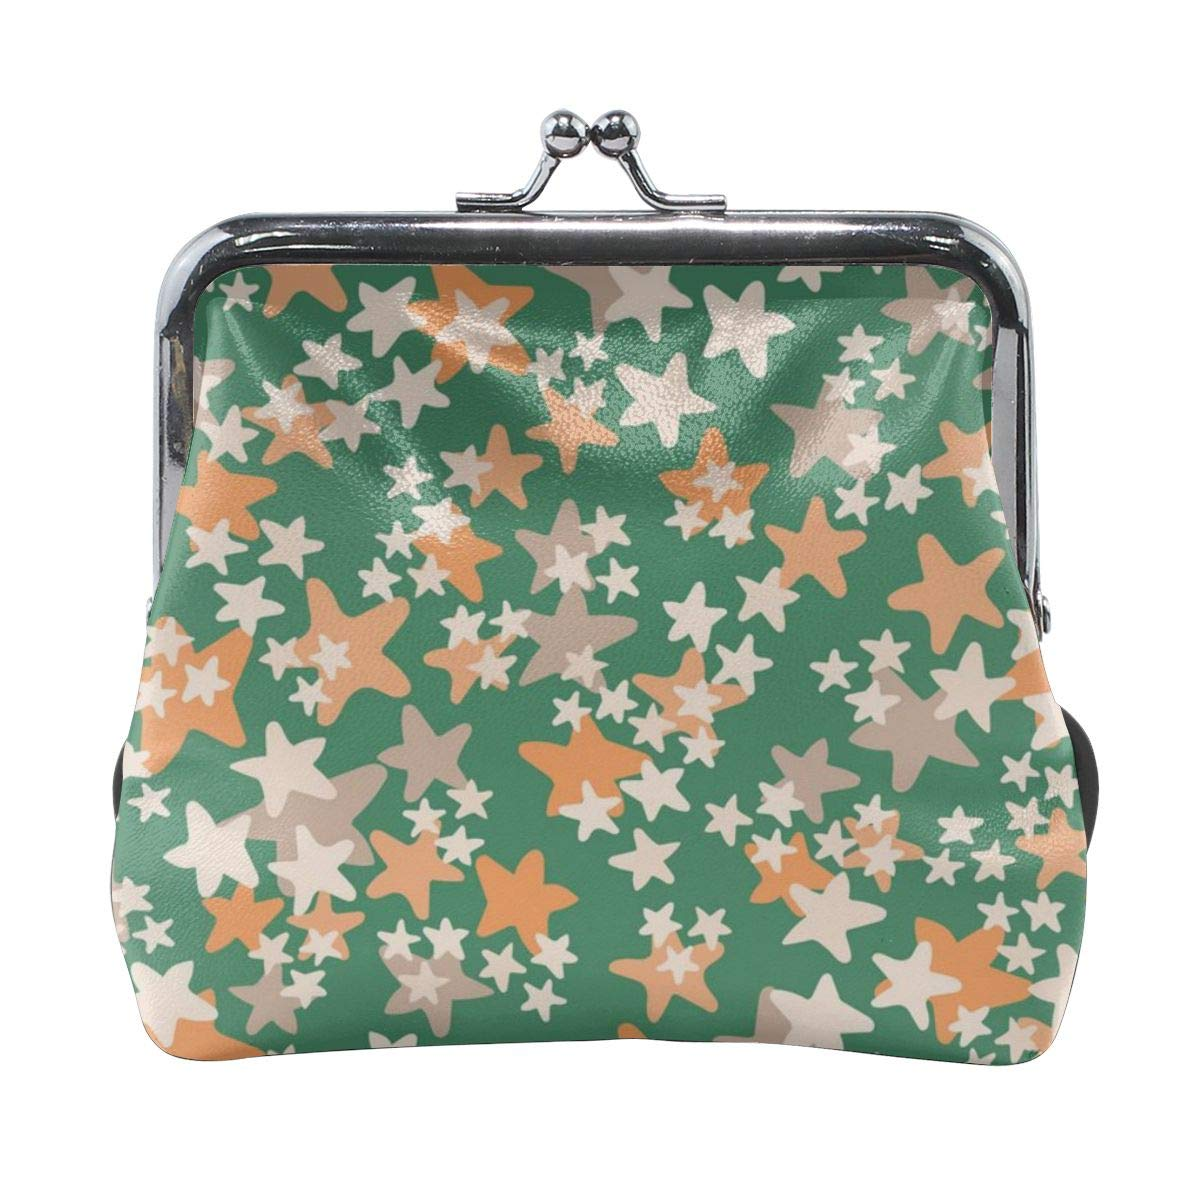 Poream White Orange Beige Stars Green Background Personalized Retro Leather Cute Classic Coin Purse Clutch Pouch Wallet For Womens